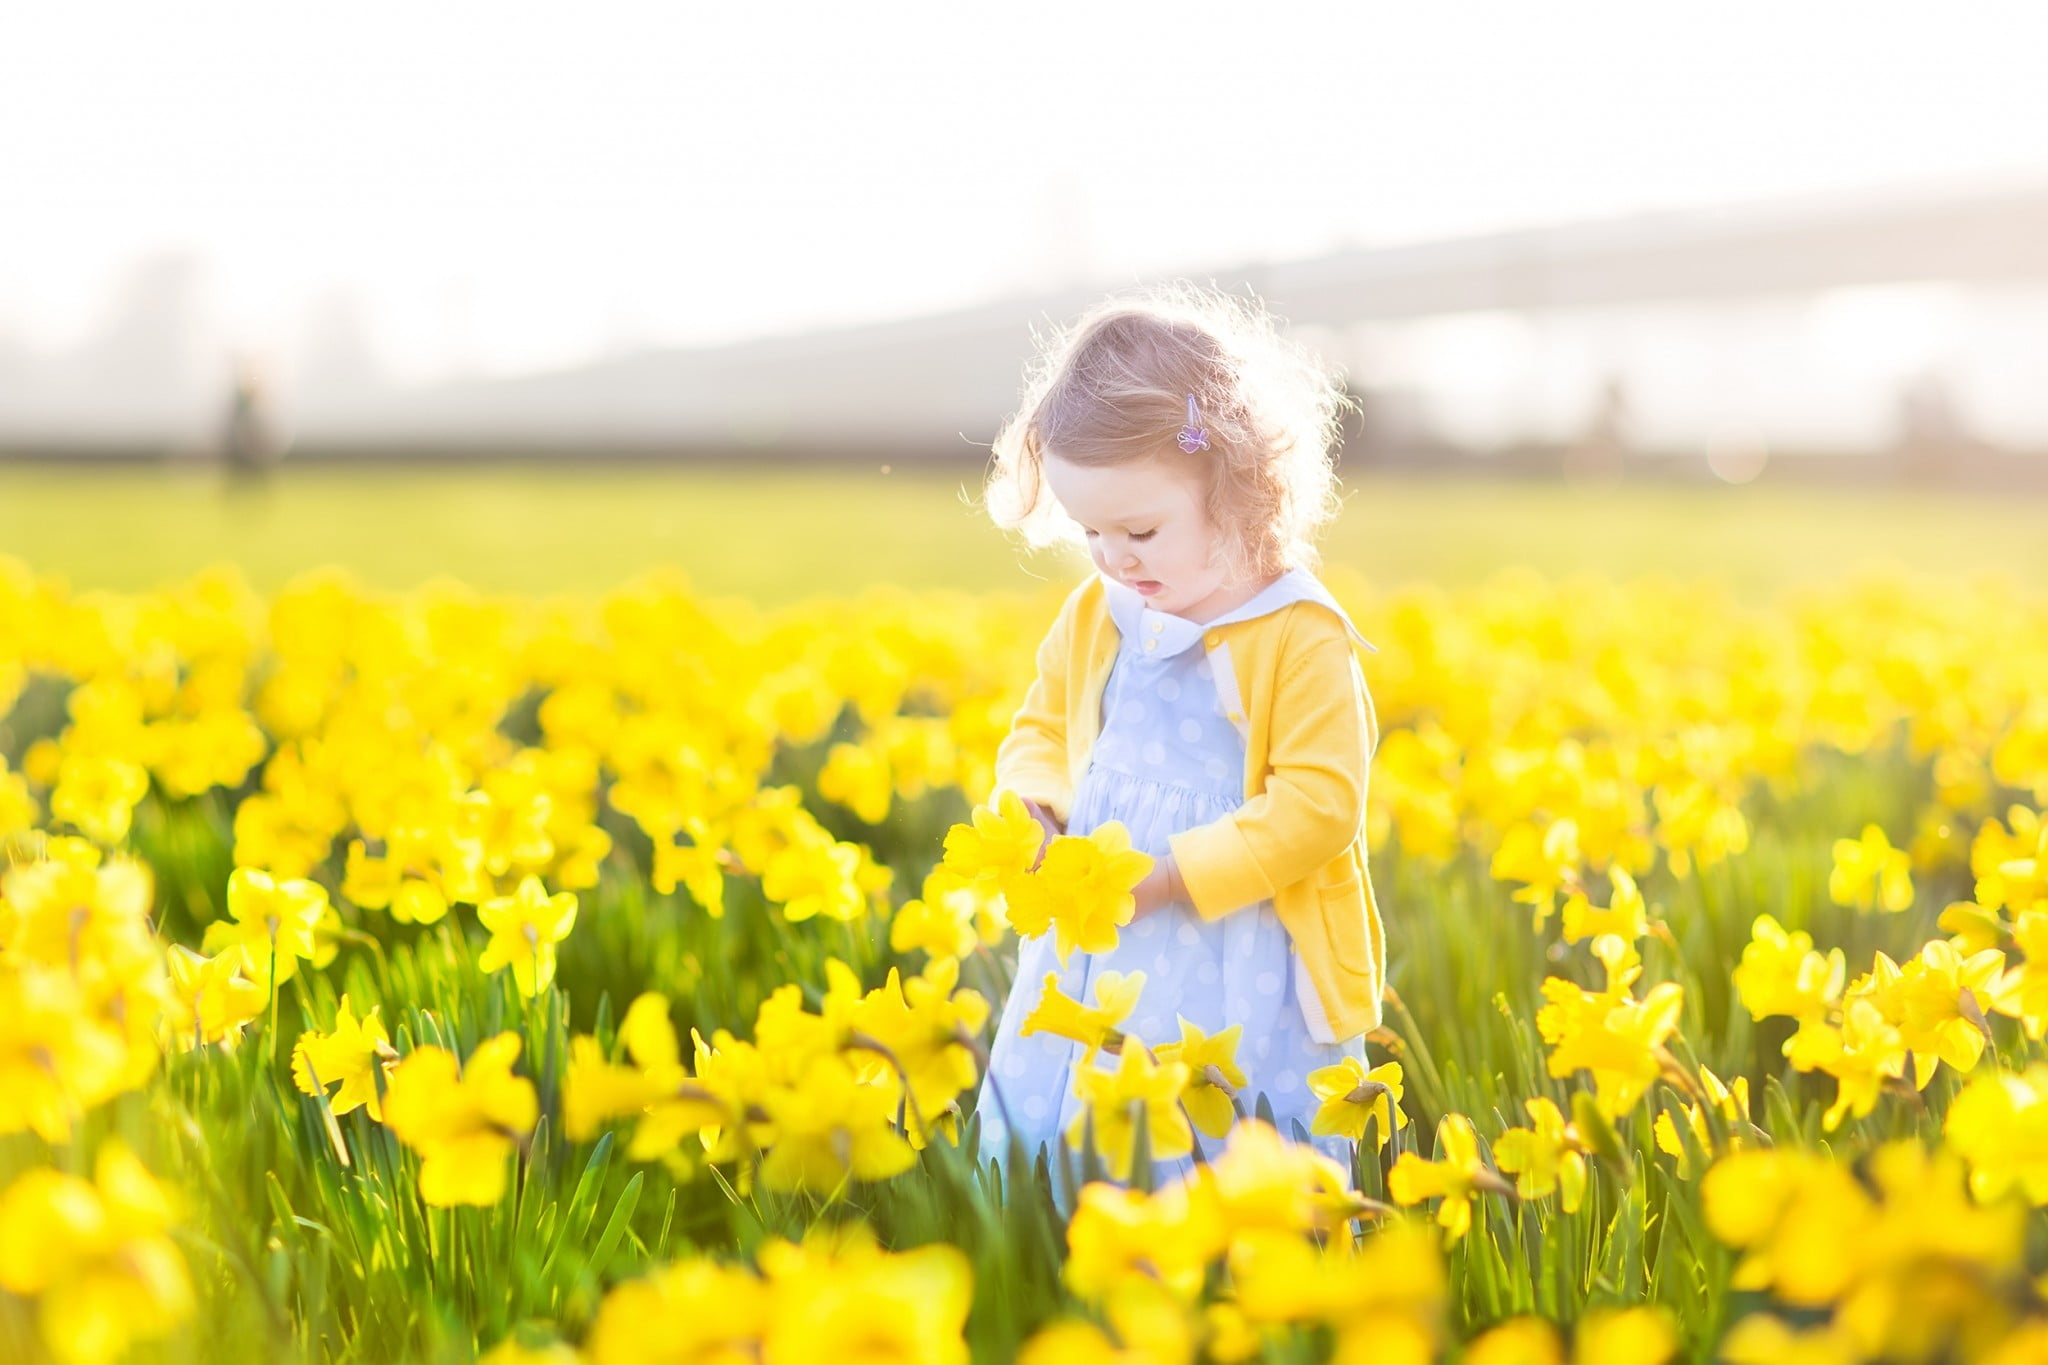 childhood cancer concept: little golden-haired toddler girl in field of daffodils